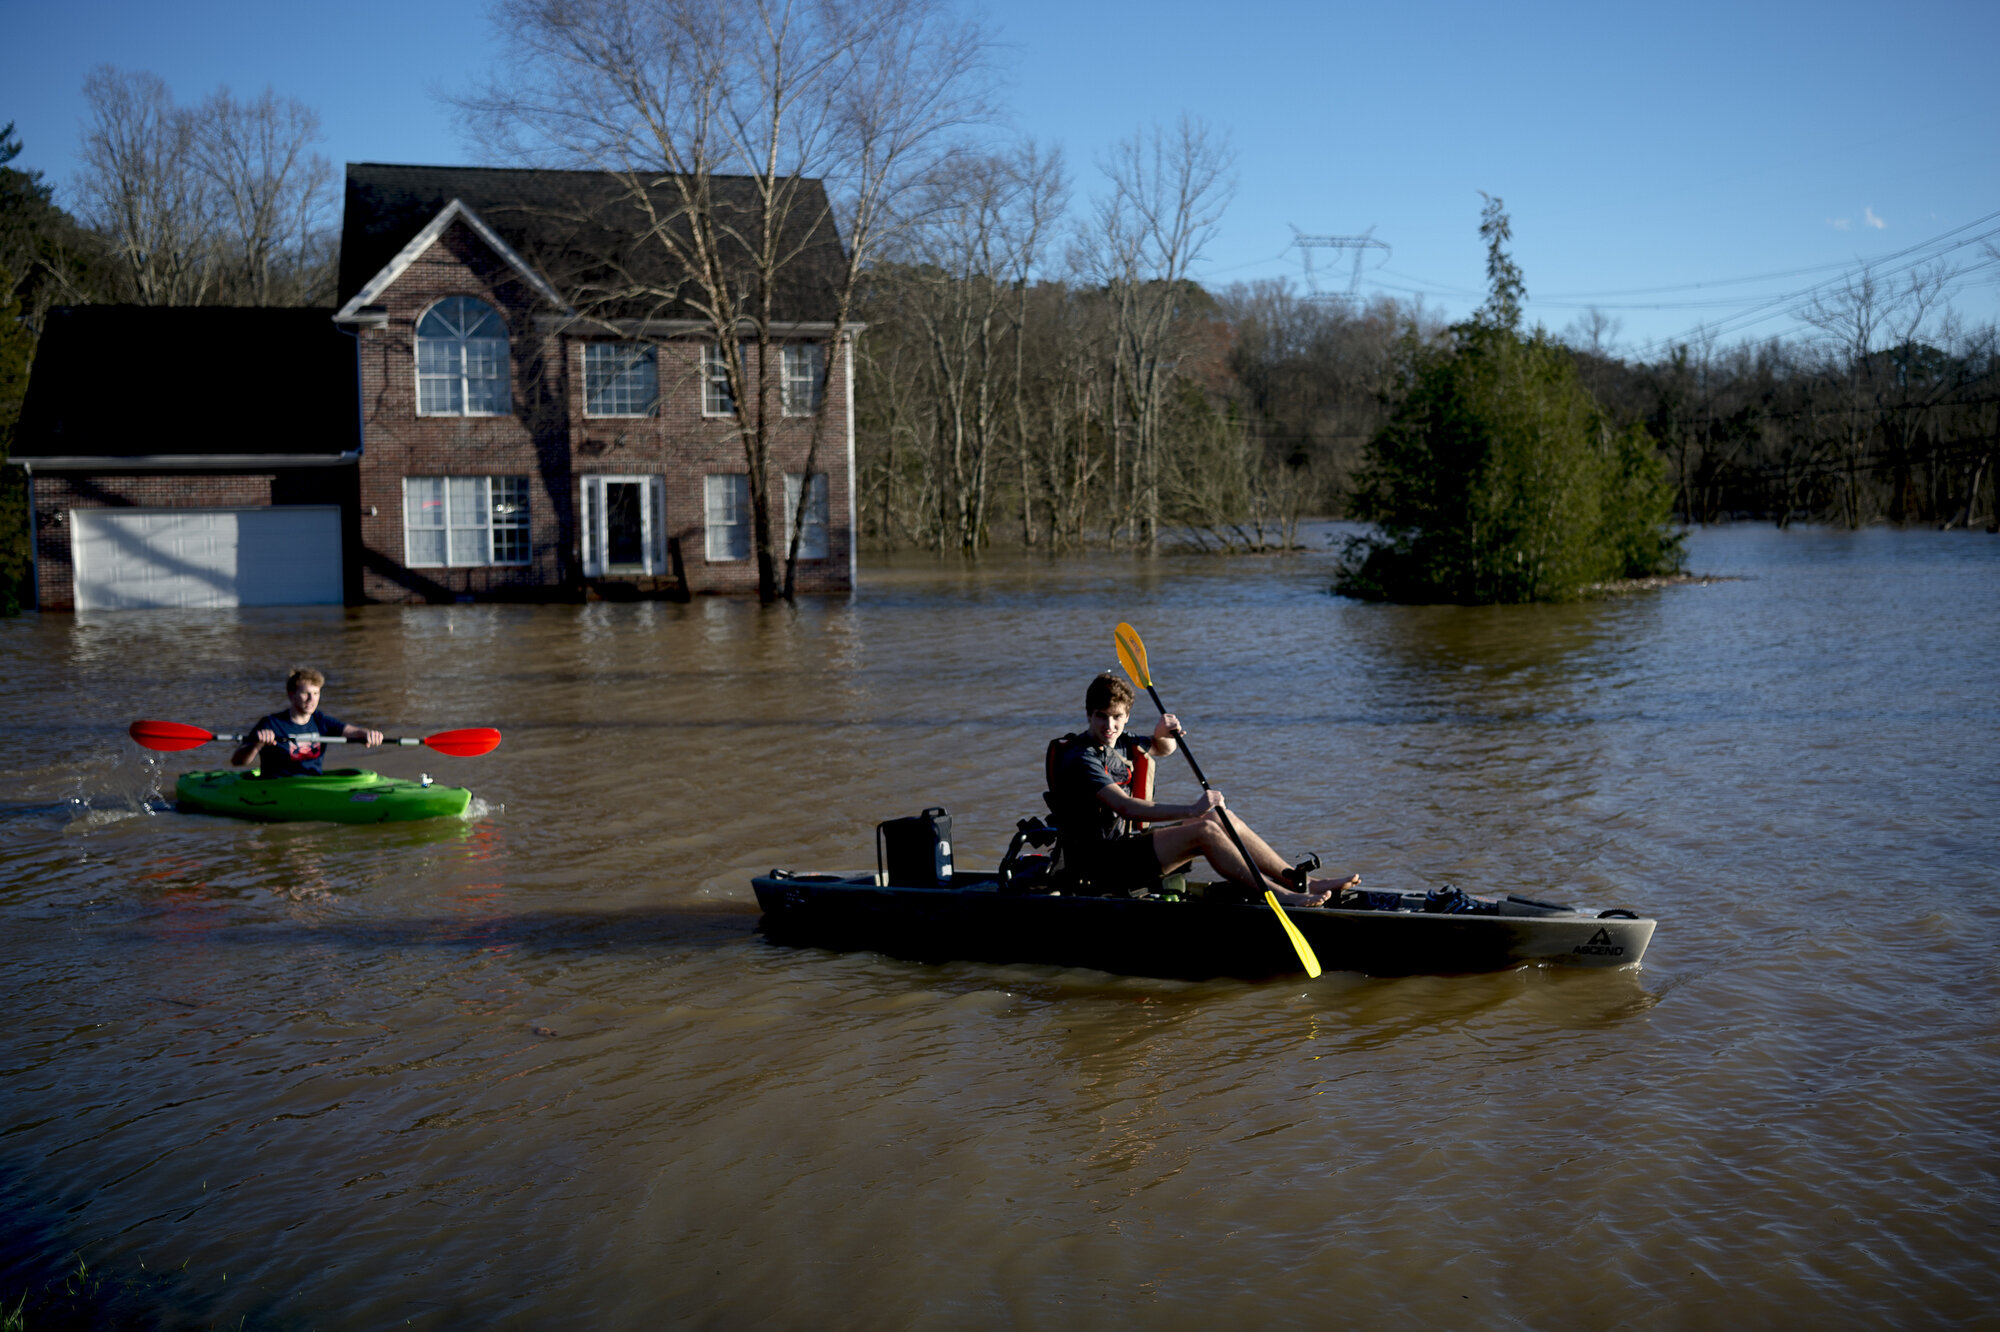 Truman Douglass and James Webster, both from Knoxville, pass by a flooded home next to the Sunoco on Ebenezer Road and Gleason Drive in Knoxville in February  2019.